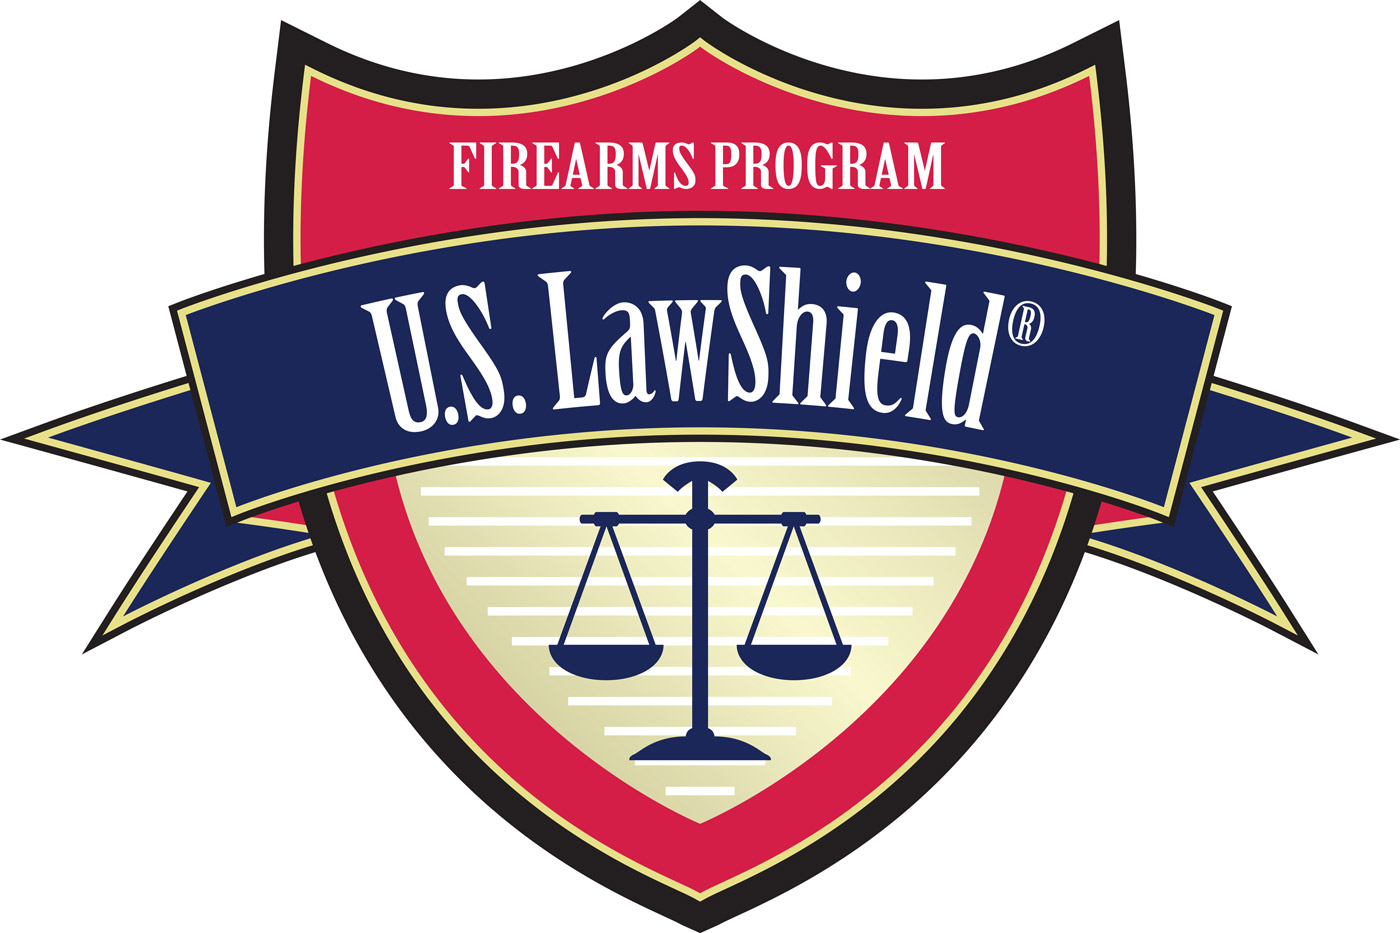 """Please get you some legal defense protection.  Why would you carry a gun and not have such coverage? To sign up with US LAWSHIELD, go to  www.uslawshield.com  and be sure to promo code """"sheepdogseminars"""" (all one word)"""